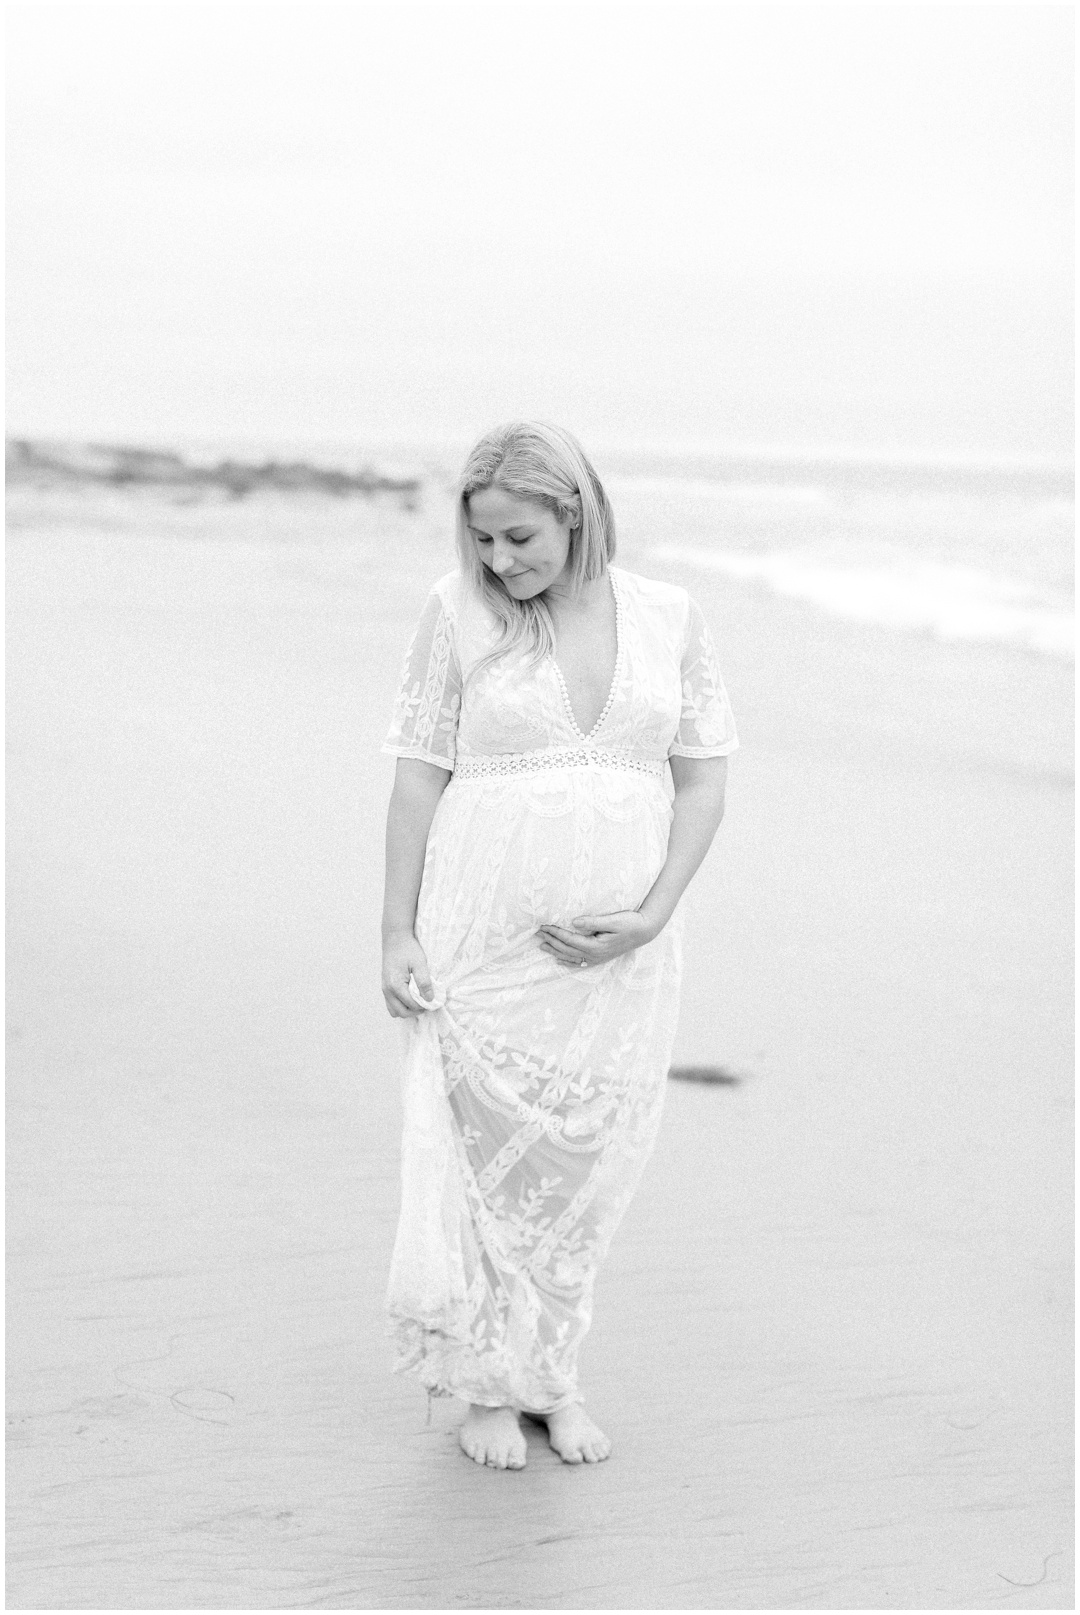 Newport_Beach_Newborn_Light_Airy_Natural_Photographer_Newport_Beach_Photographer_Orange_County_Family_Photographer_Cori_Kleckner_Photography_Newport_Beach_Photographer_Marisa_Podesto_Todd_Podesto__3966.jpg